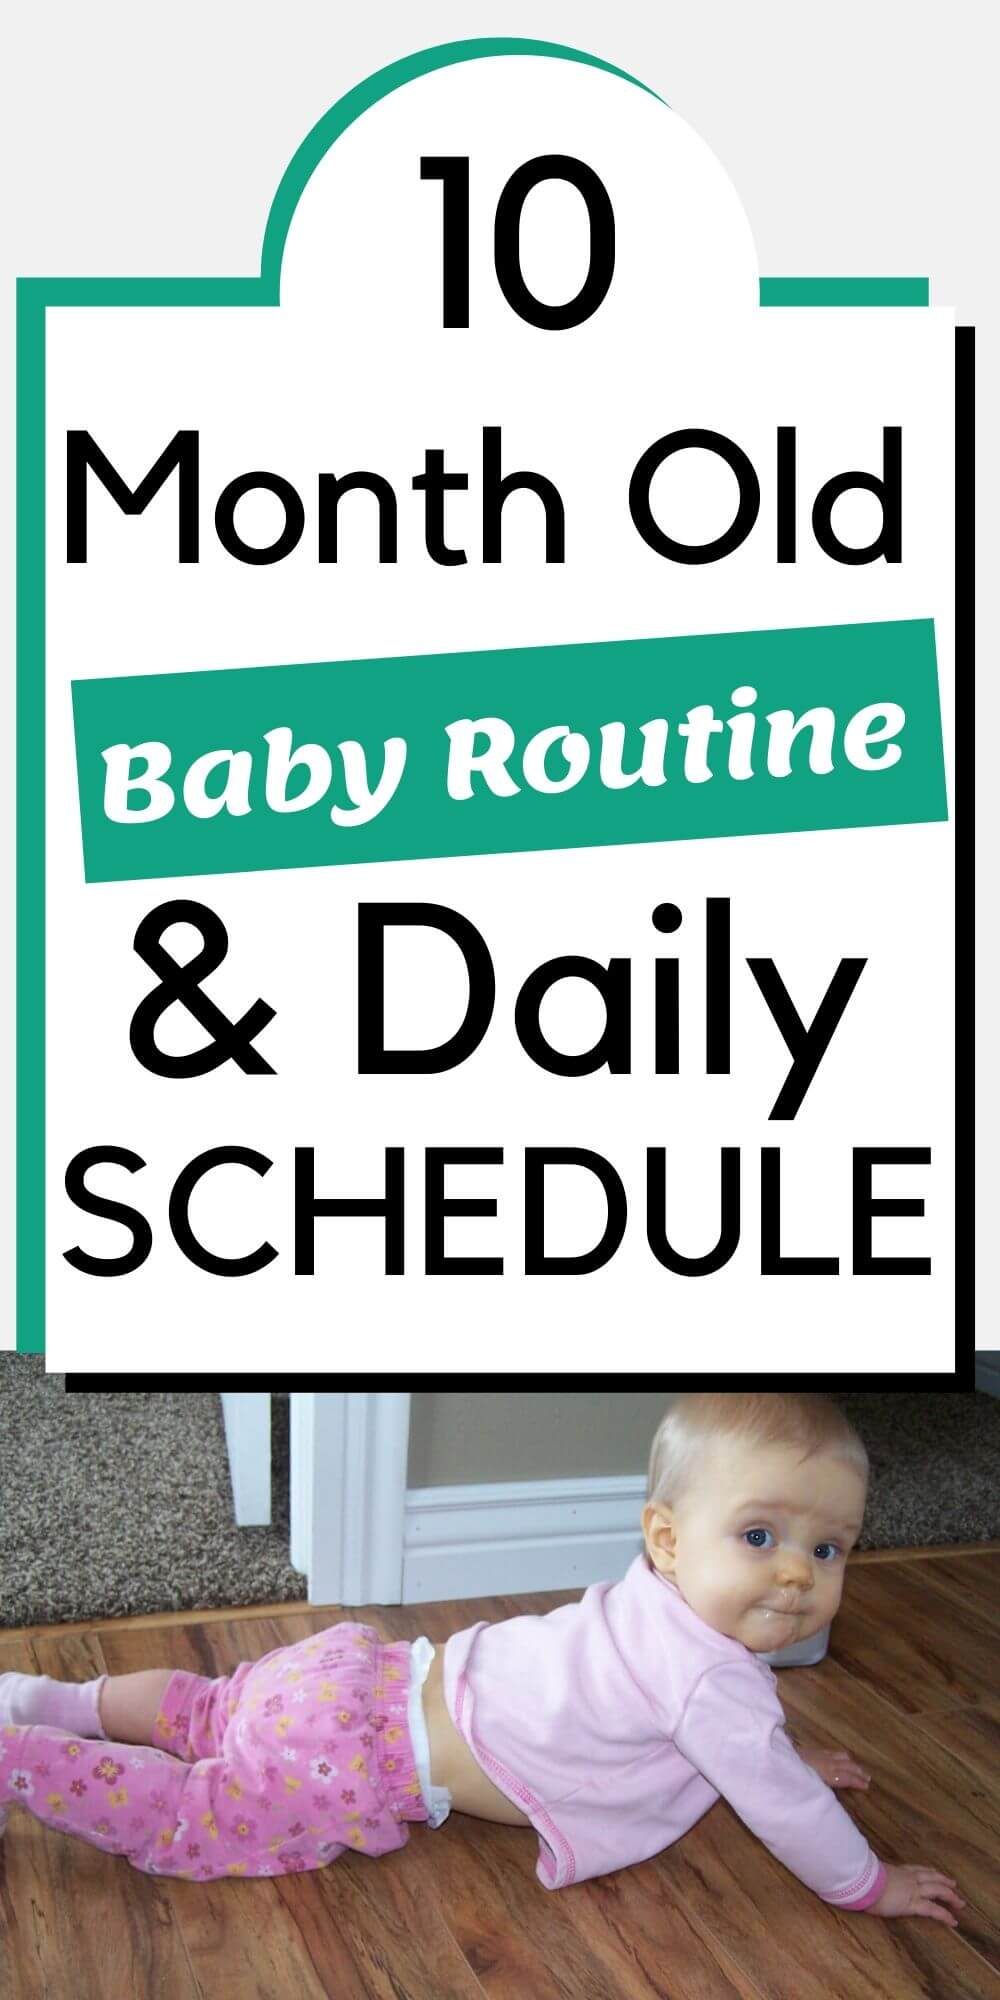 10 Month Old Baby Routine and Daily Schedule Pinnable Image